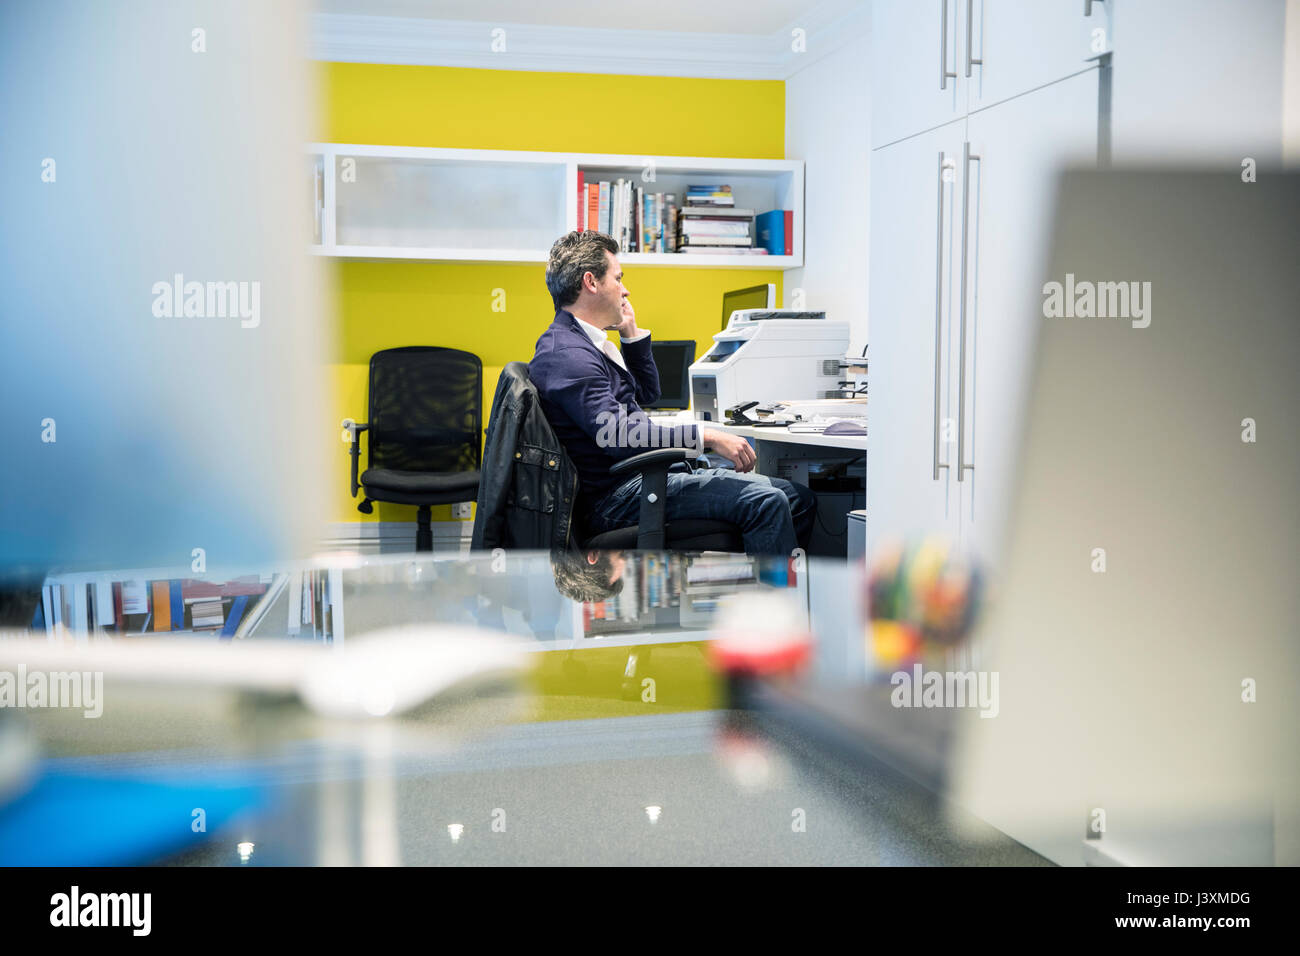 Man sitting at desk in office making telephone call - Stock Image